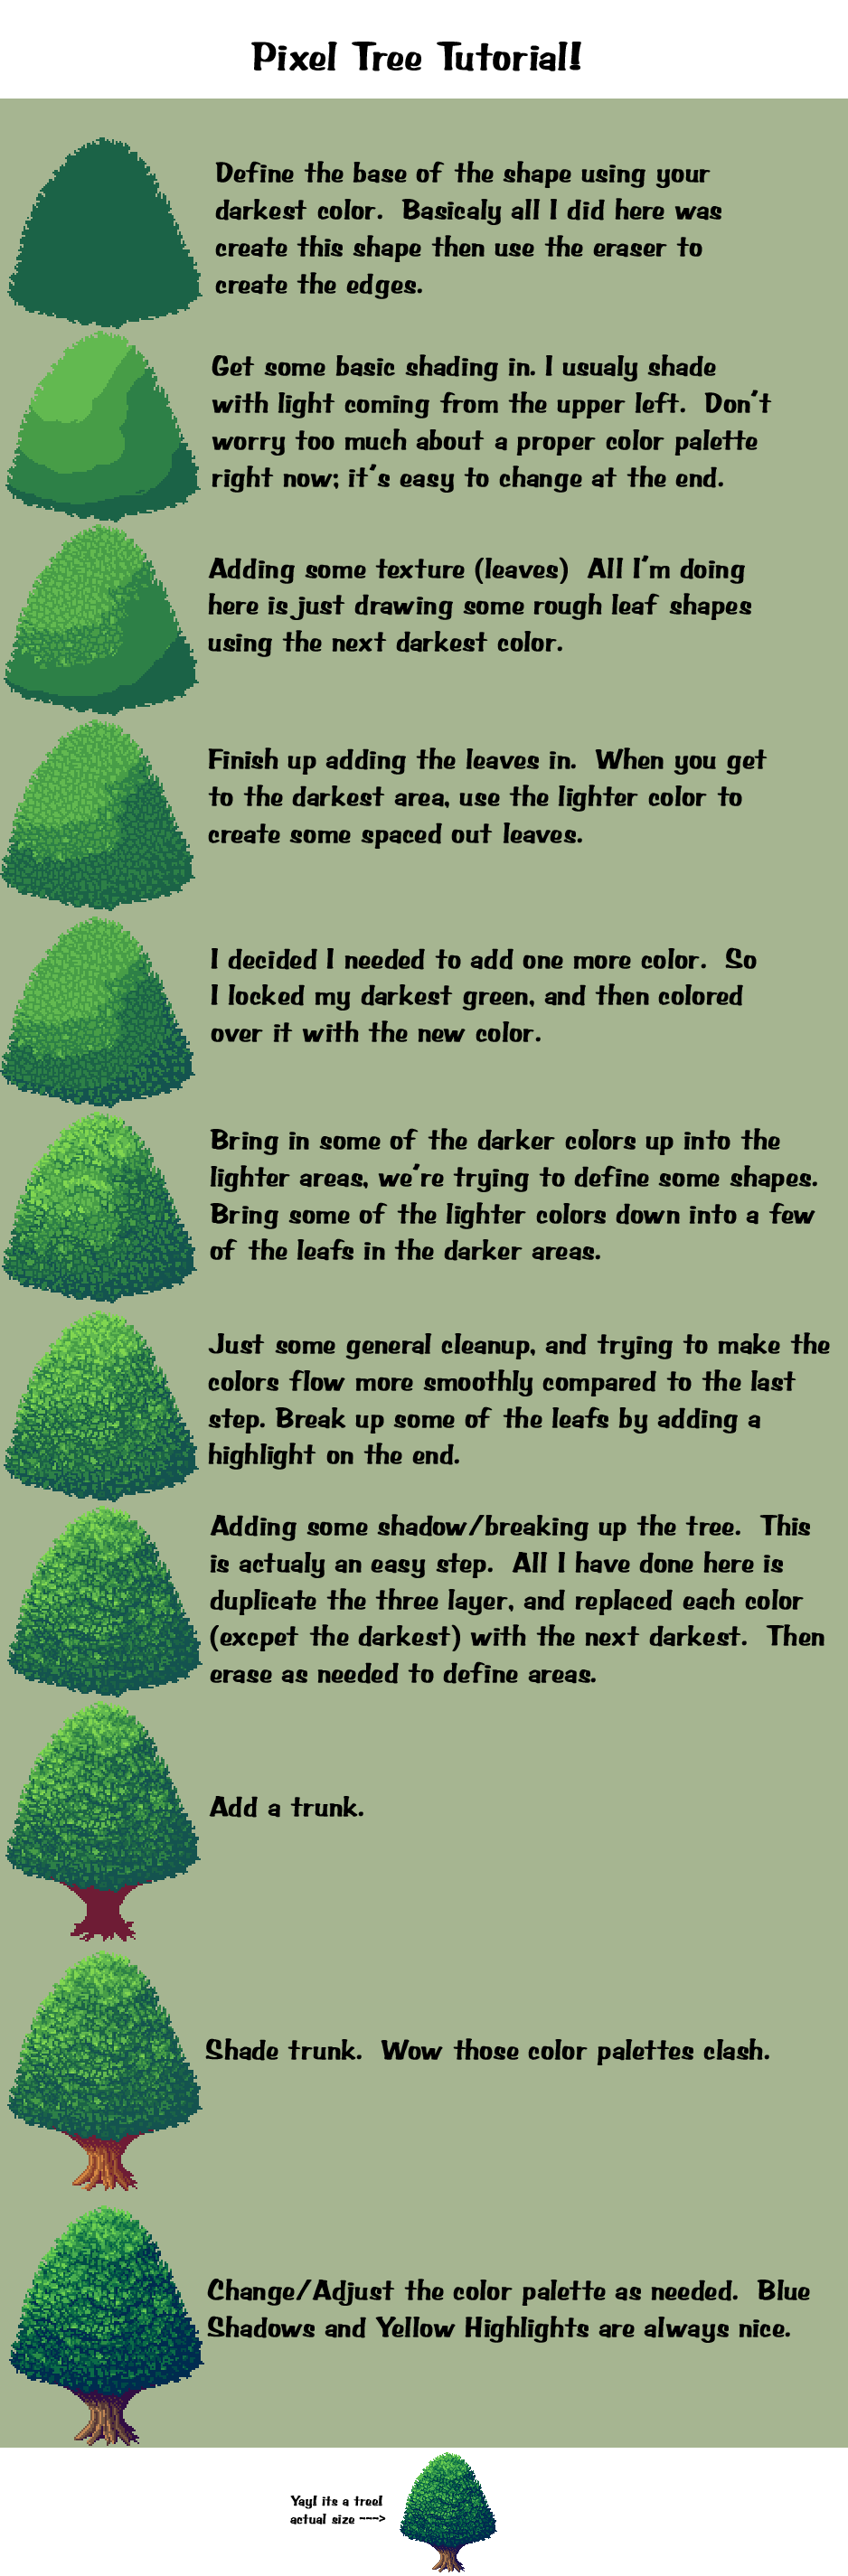 Pixel Tree Tutorial by D-e-n-a on DeviantArt | Pixel Art | Pinterest ...